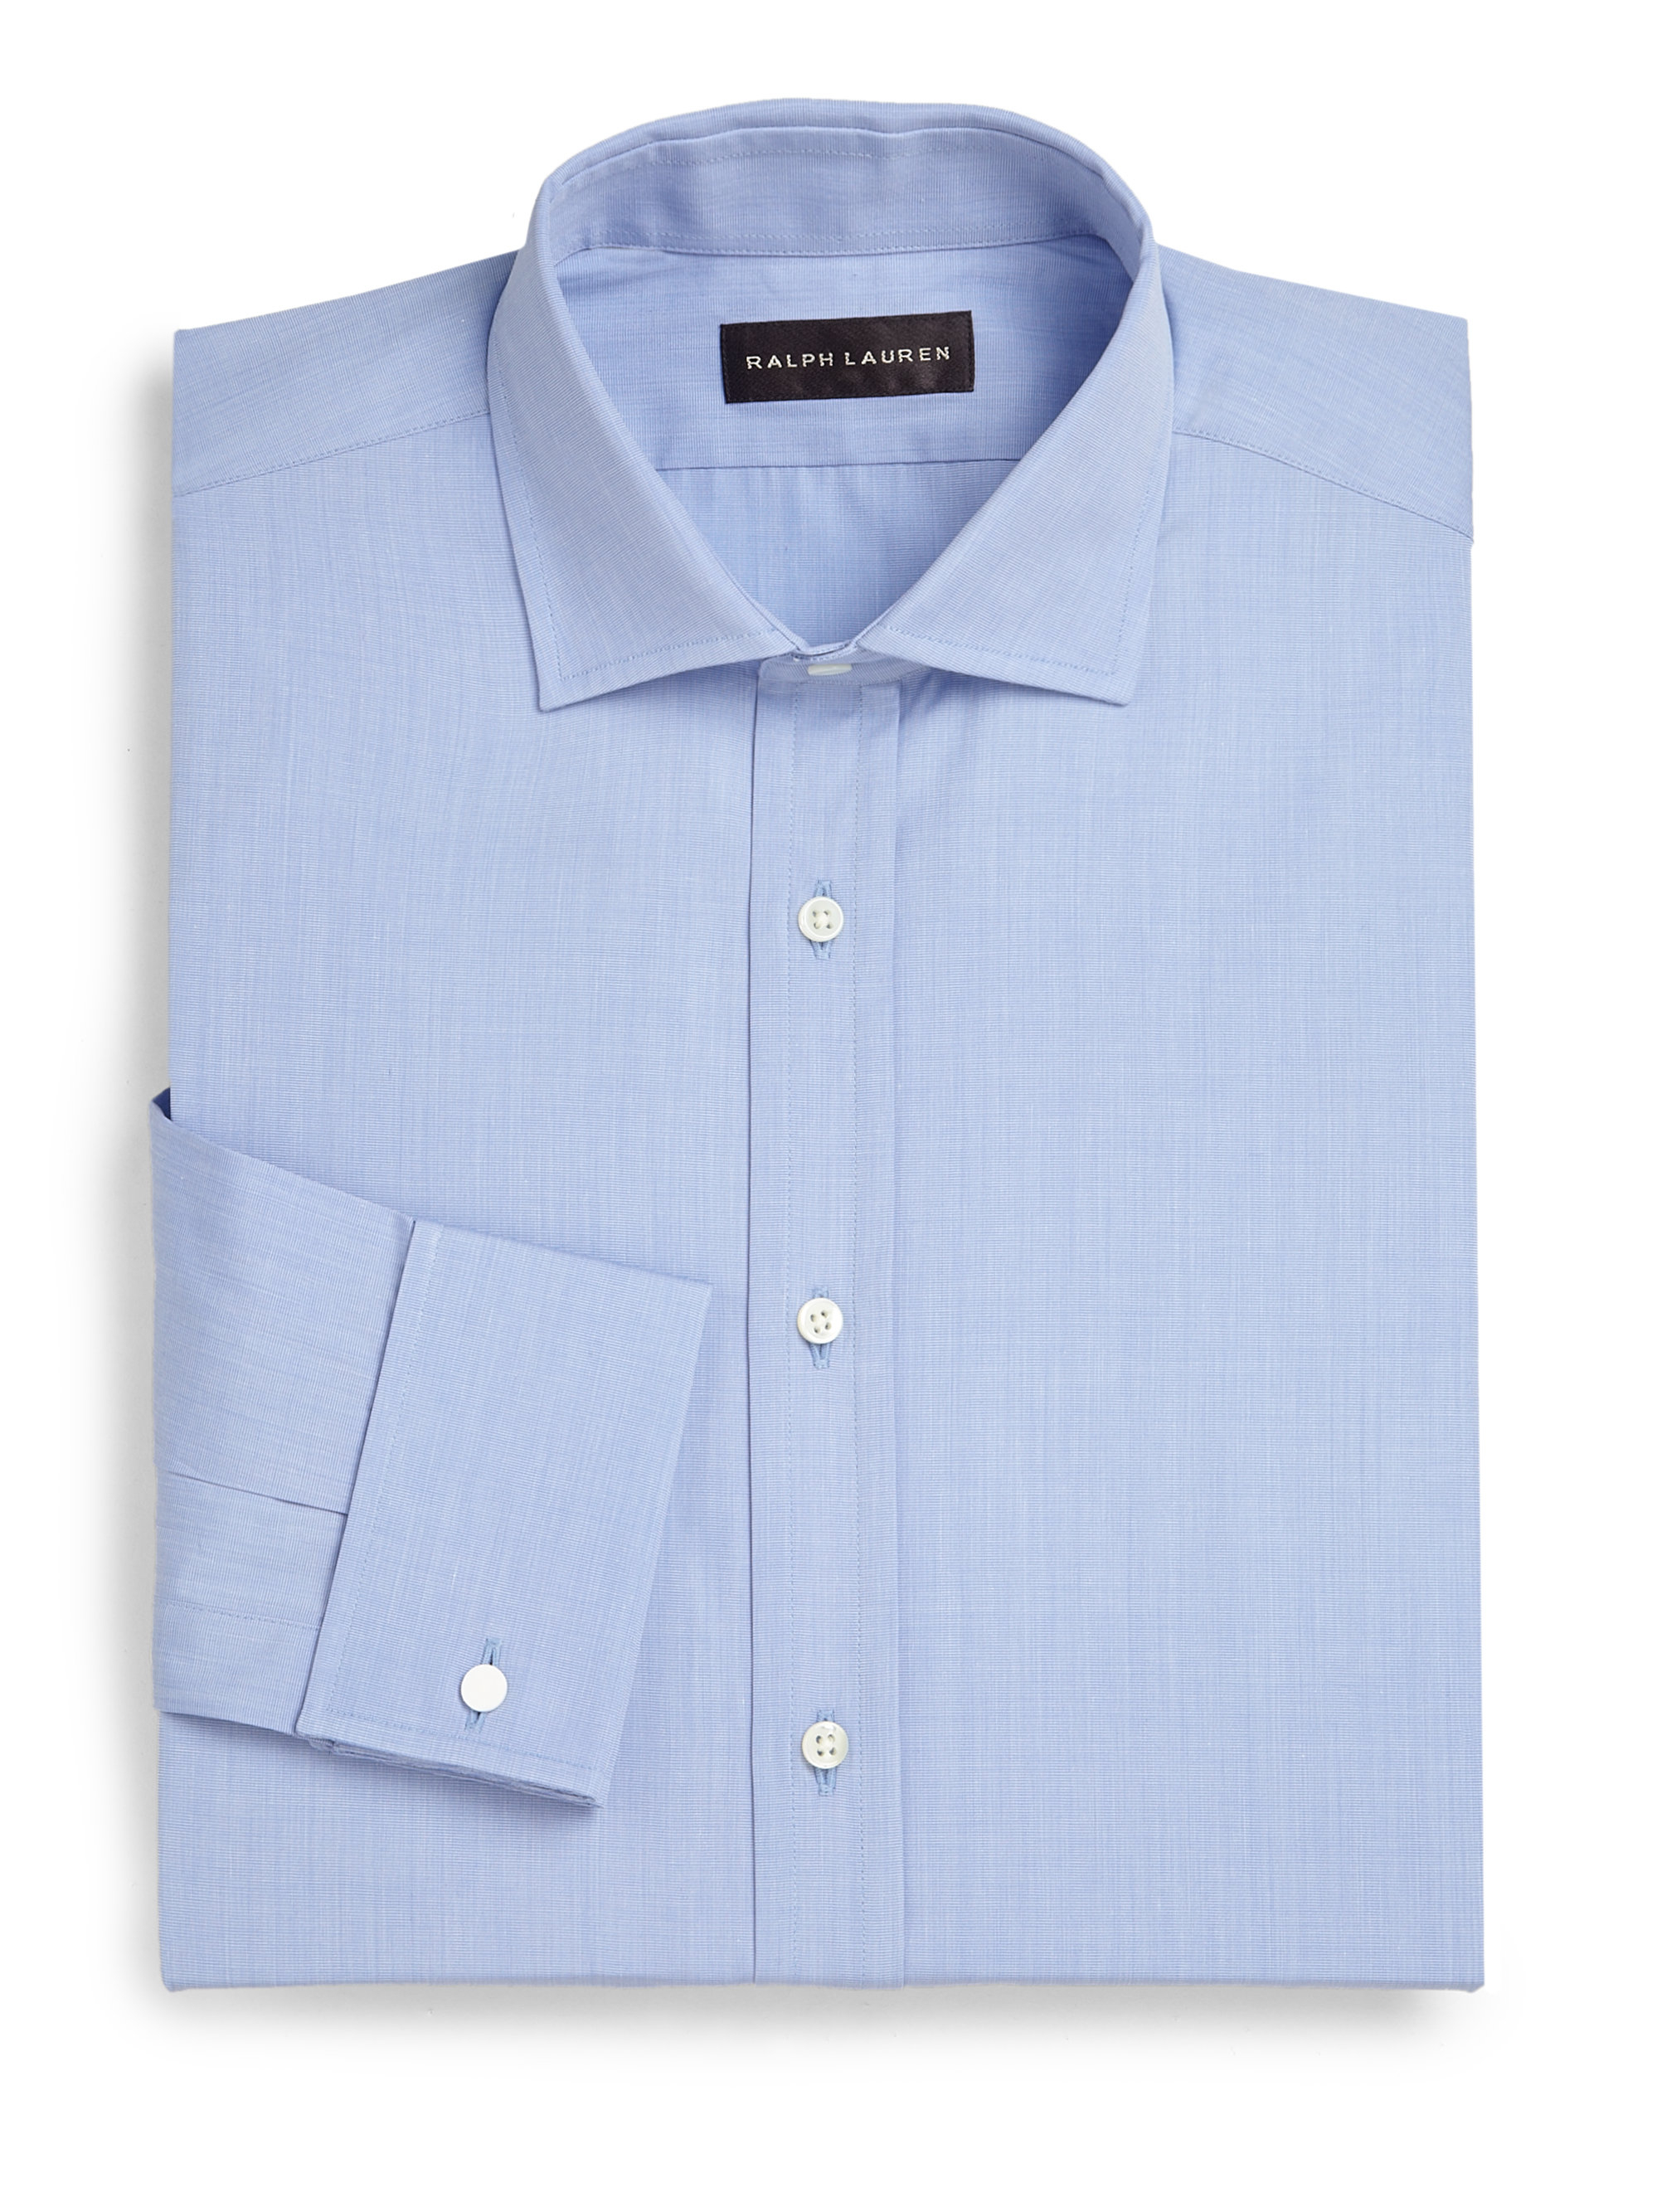 Ralph Lauren Classic Fit French Cuff Dress Shirt In Blue